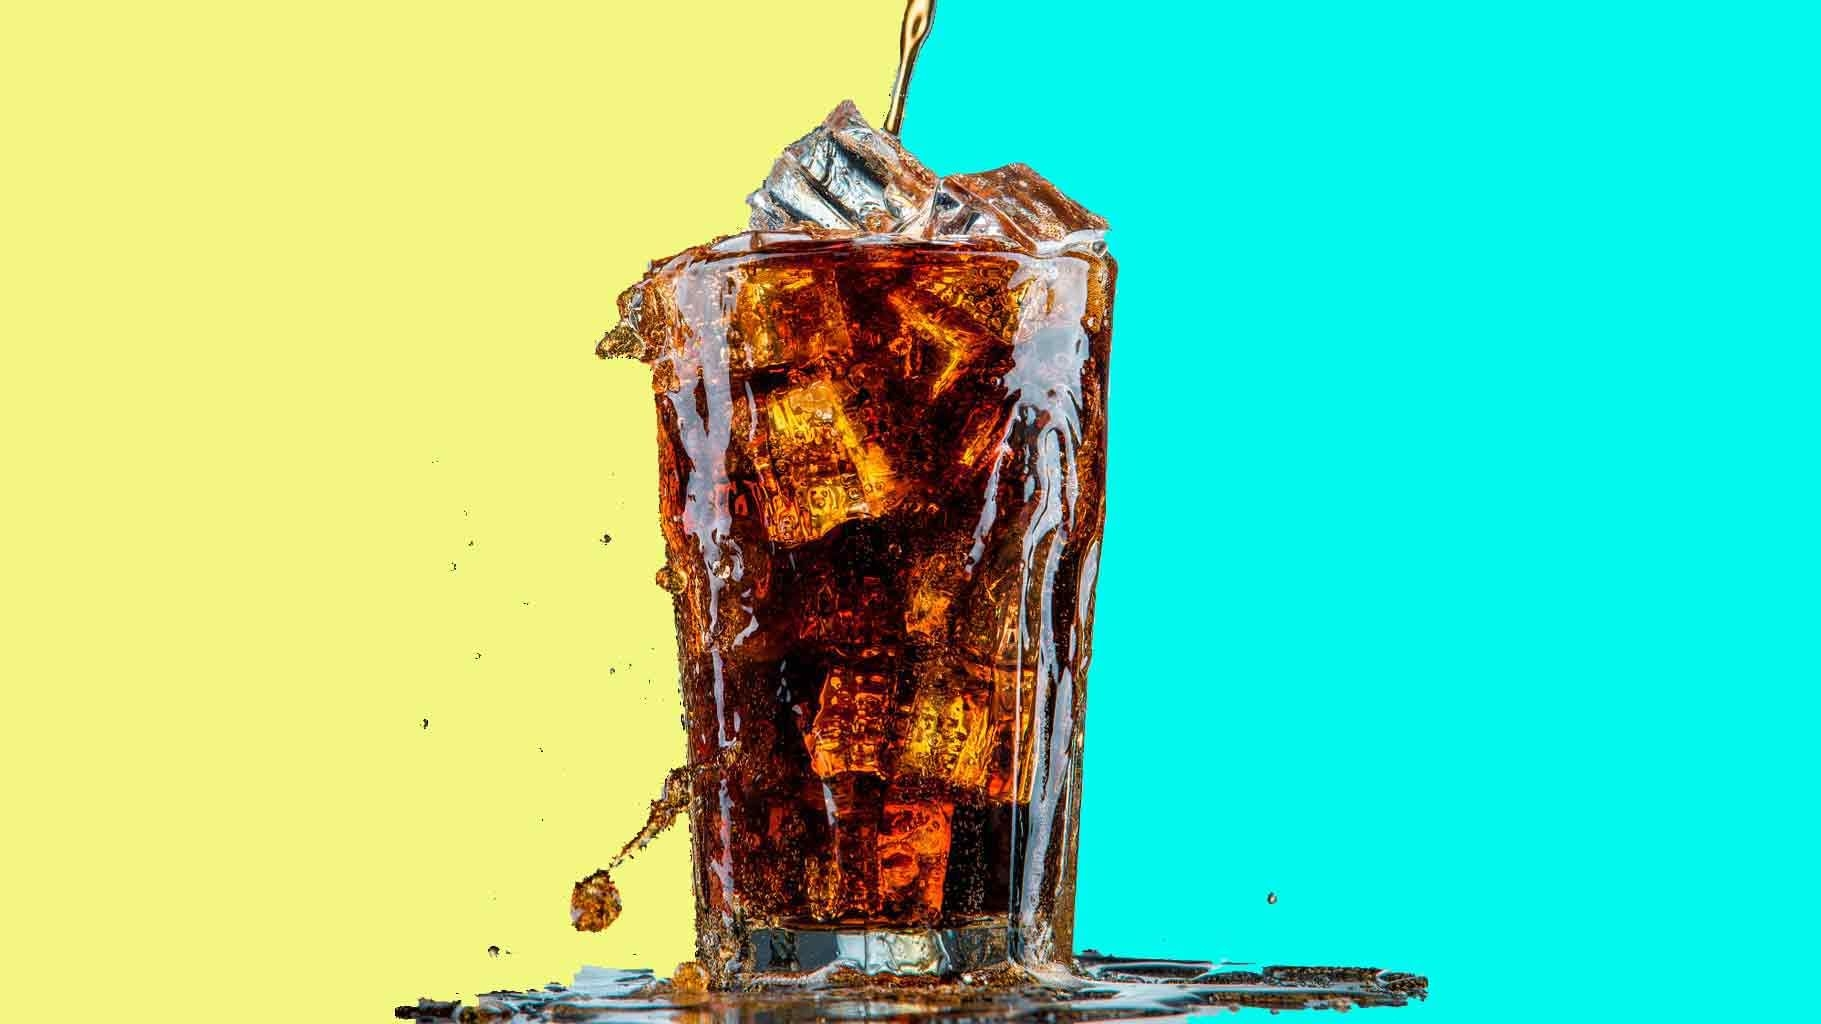 Study Finds Diet Soda May Not Help Kids Cut Calories